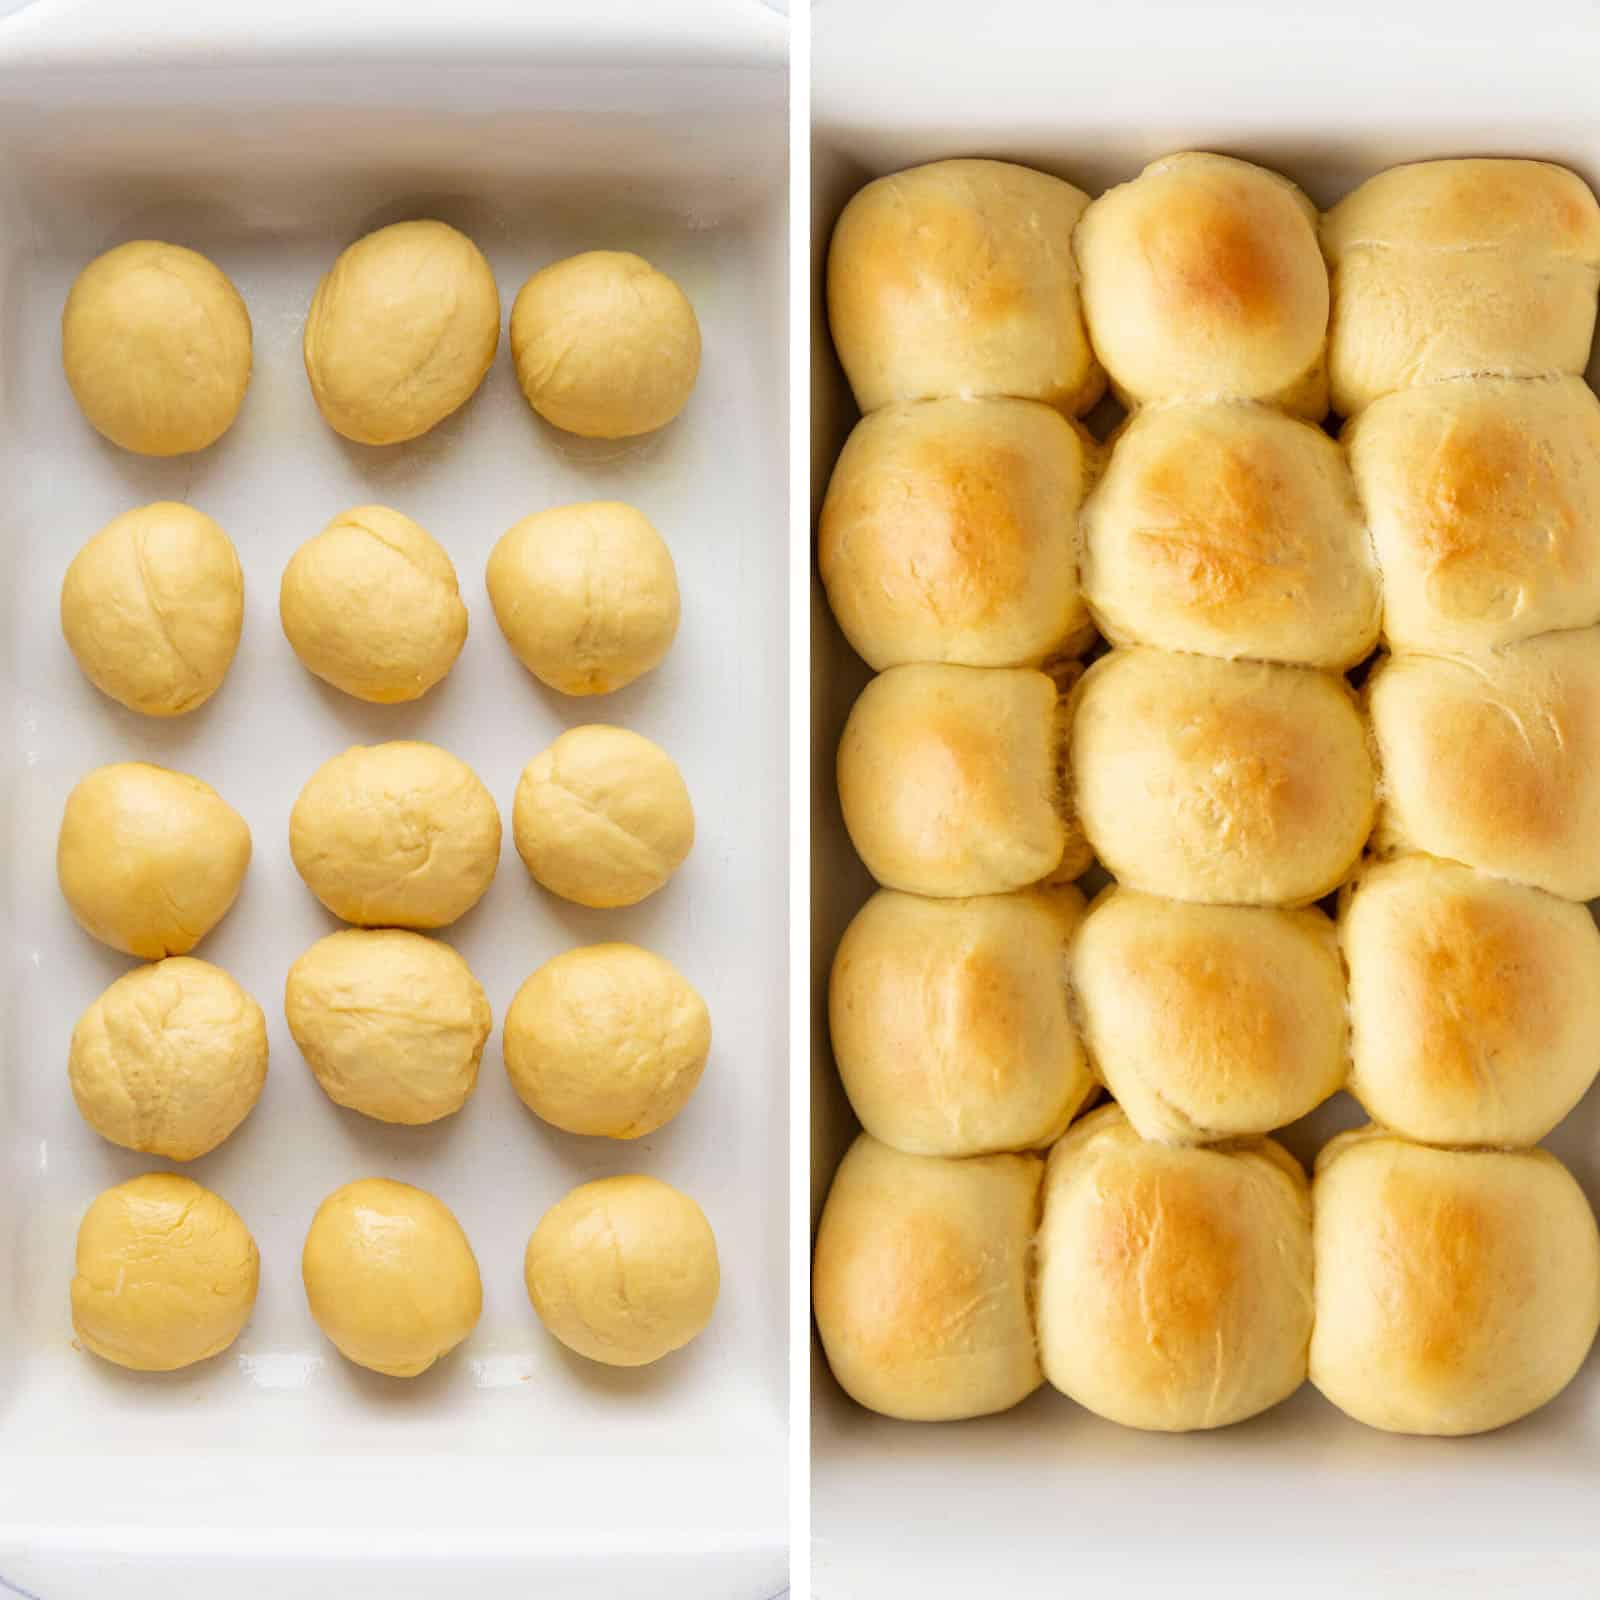 Process of Hawaiian Rolls with One Image of the Raw Dough and One of the Baked Rolls